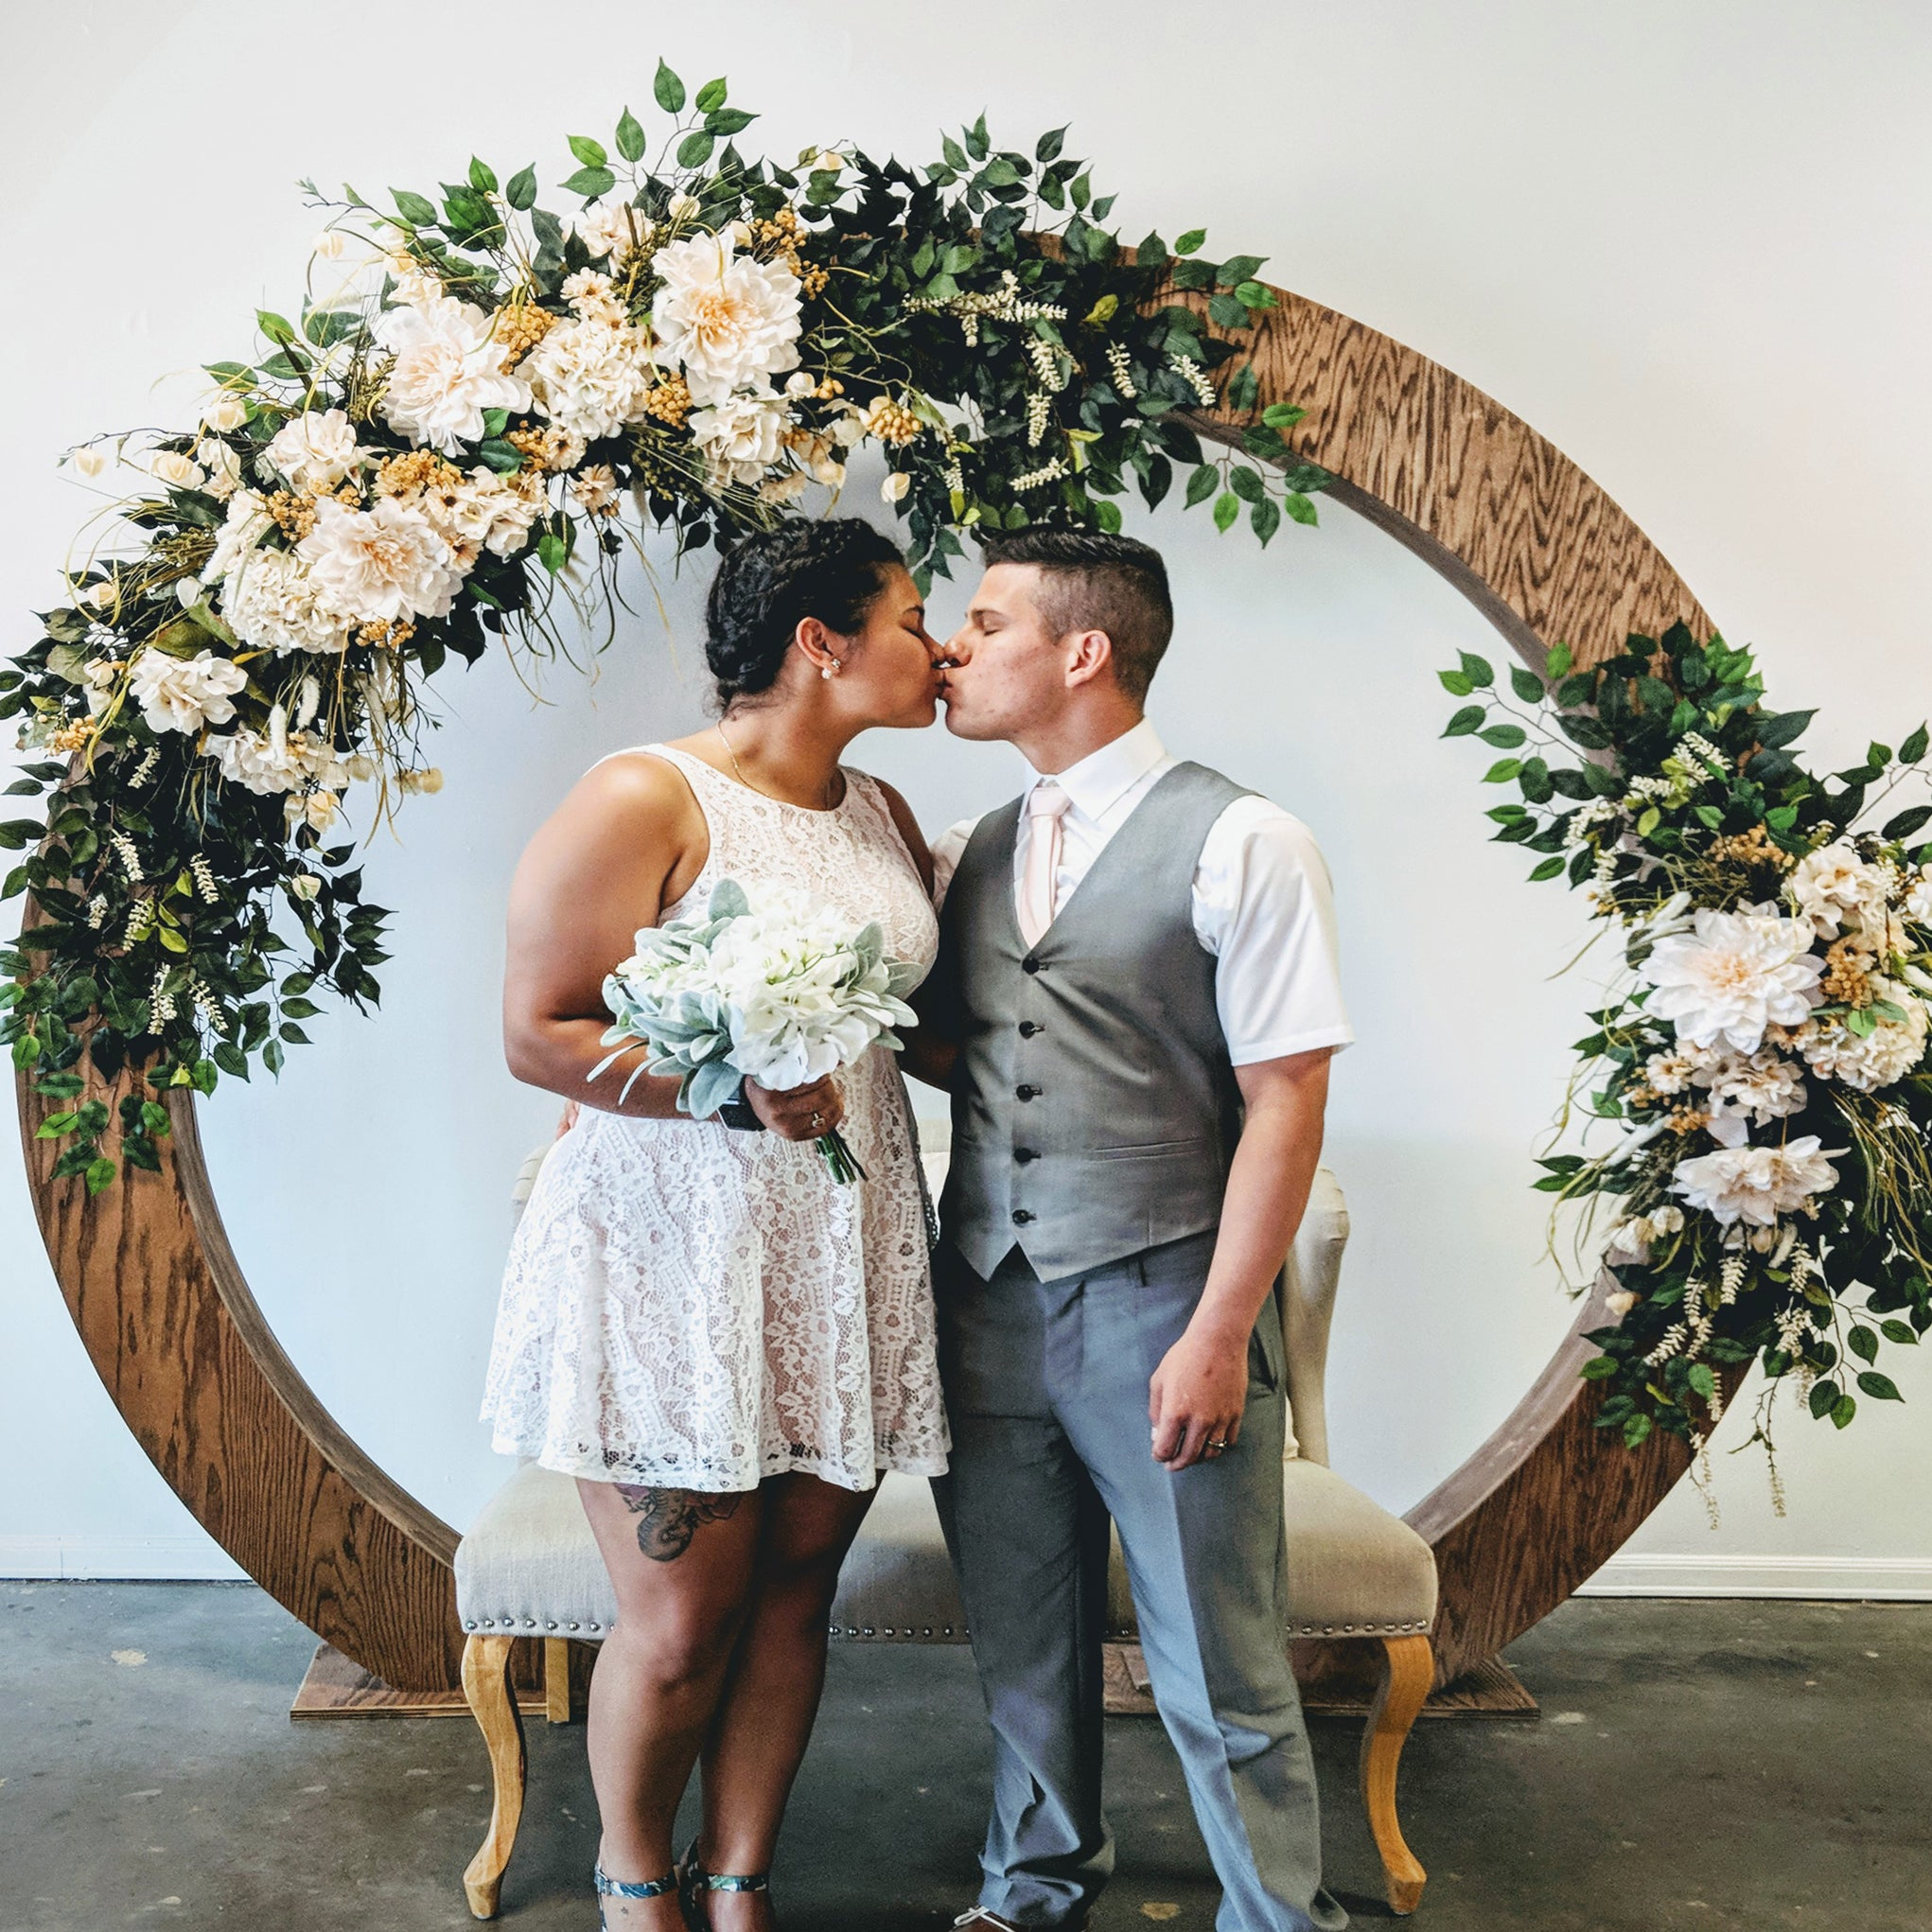 Wedding Arbor Circle: The Wedding Shop By Uniting Happiness